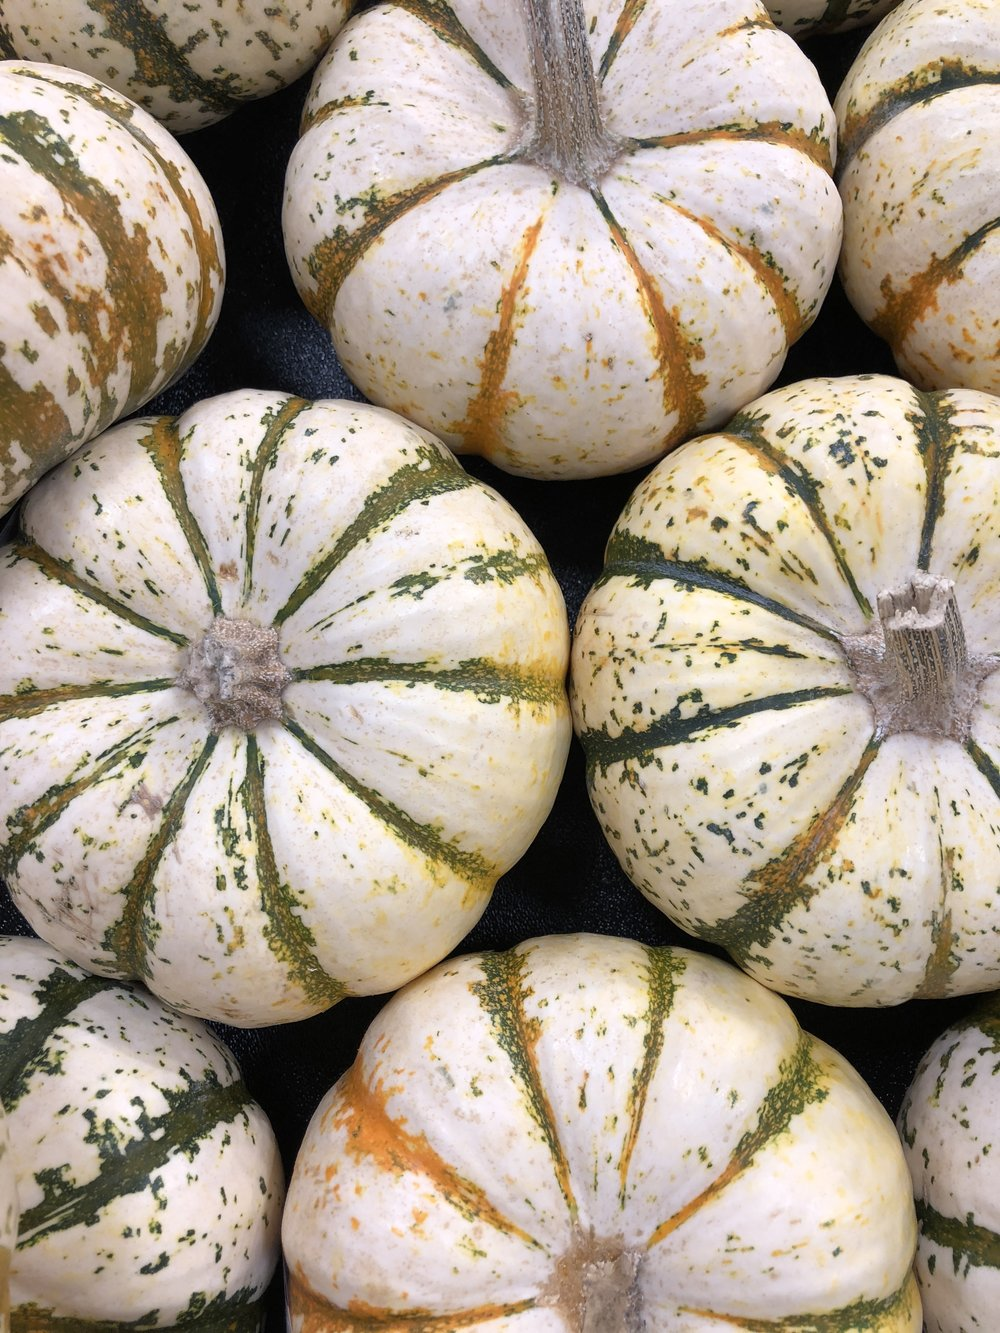 Glimsen-white-gourds.JPG